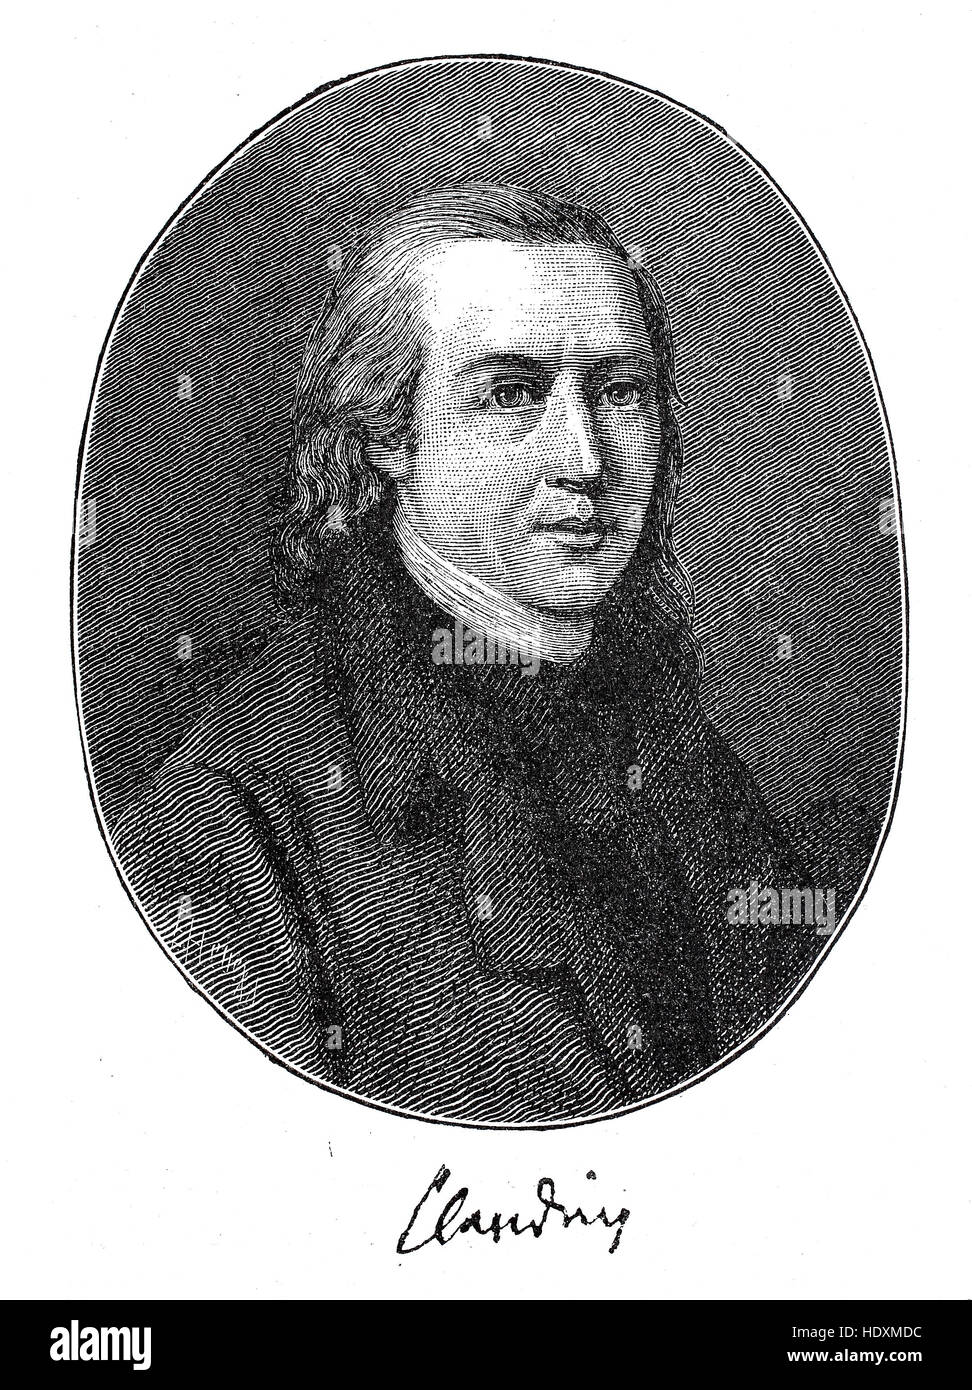 Matthias Claudius, pseudonym Asmus, 1740-1815, a German poet, journalist and lyricist, woodcut from the year 1882, - Stock Image